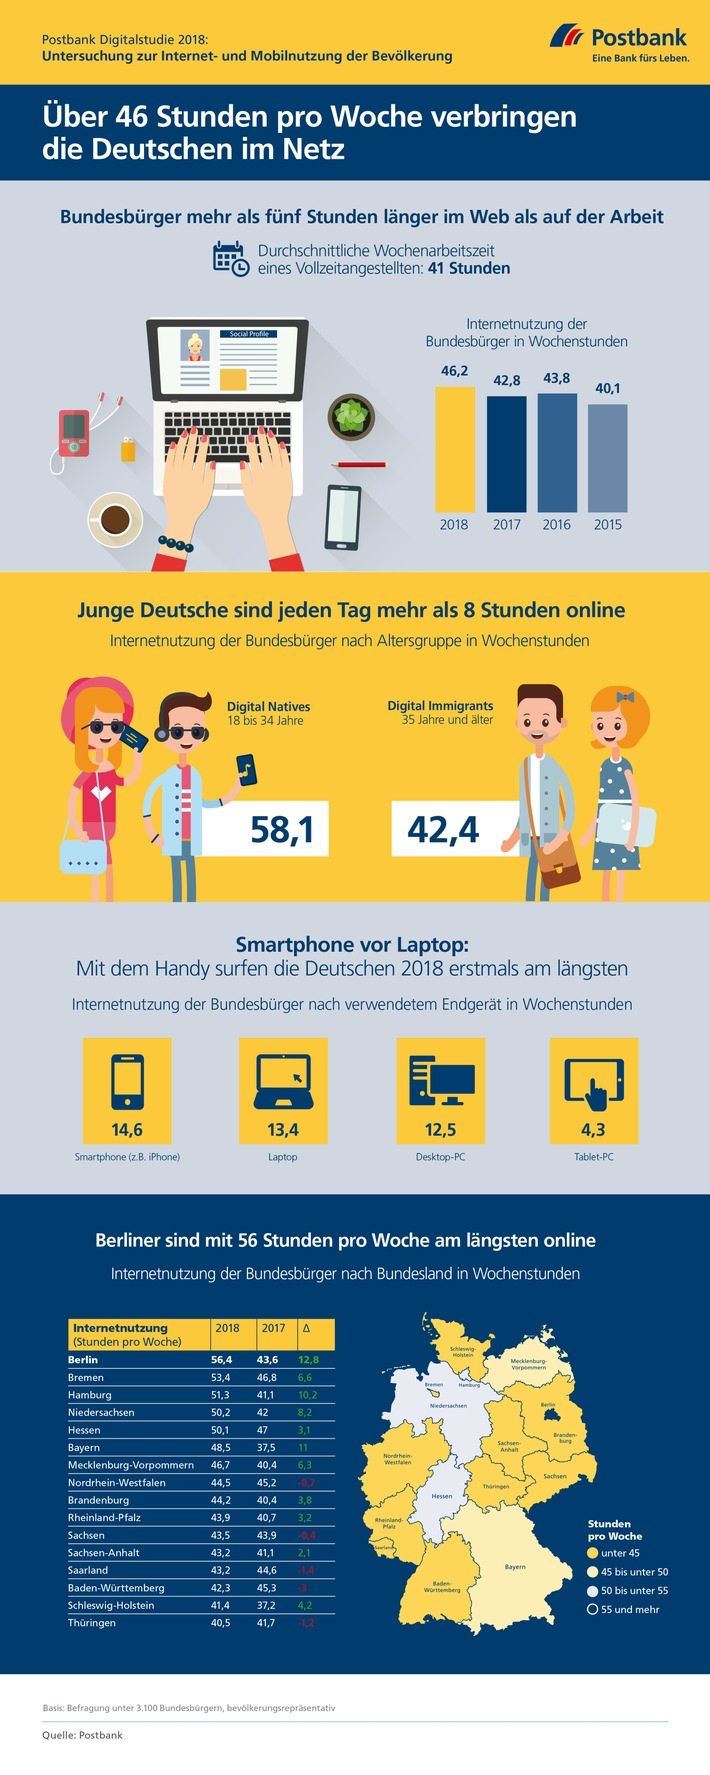 Postbank Digitalstudie 2018